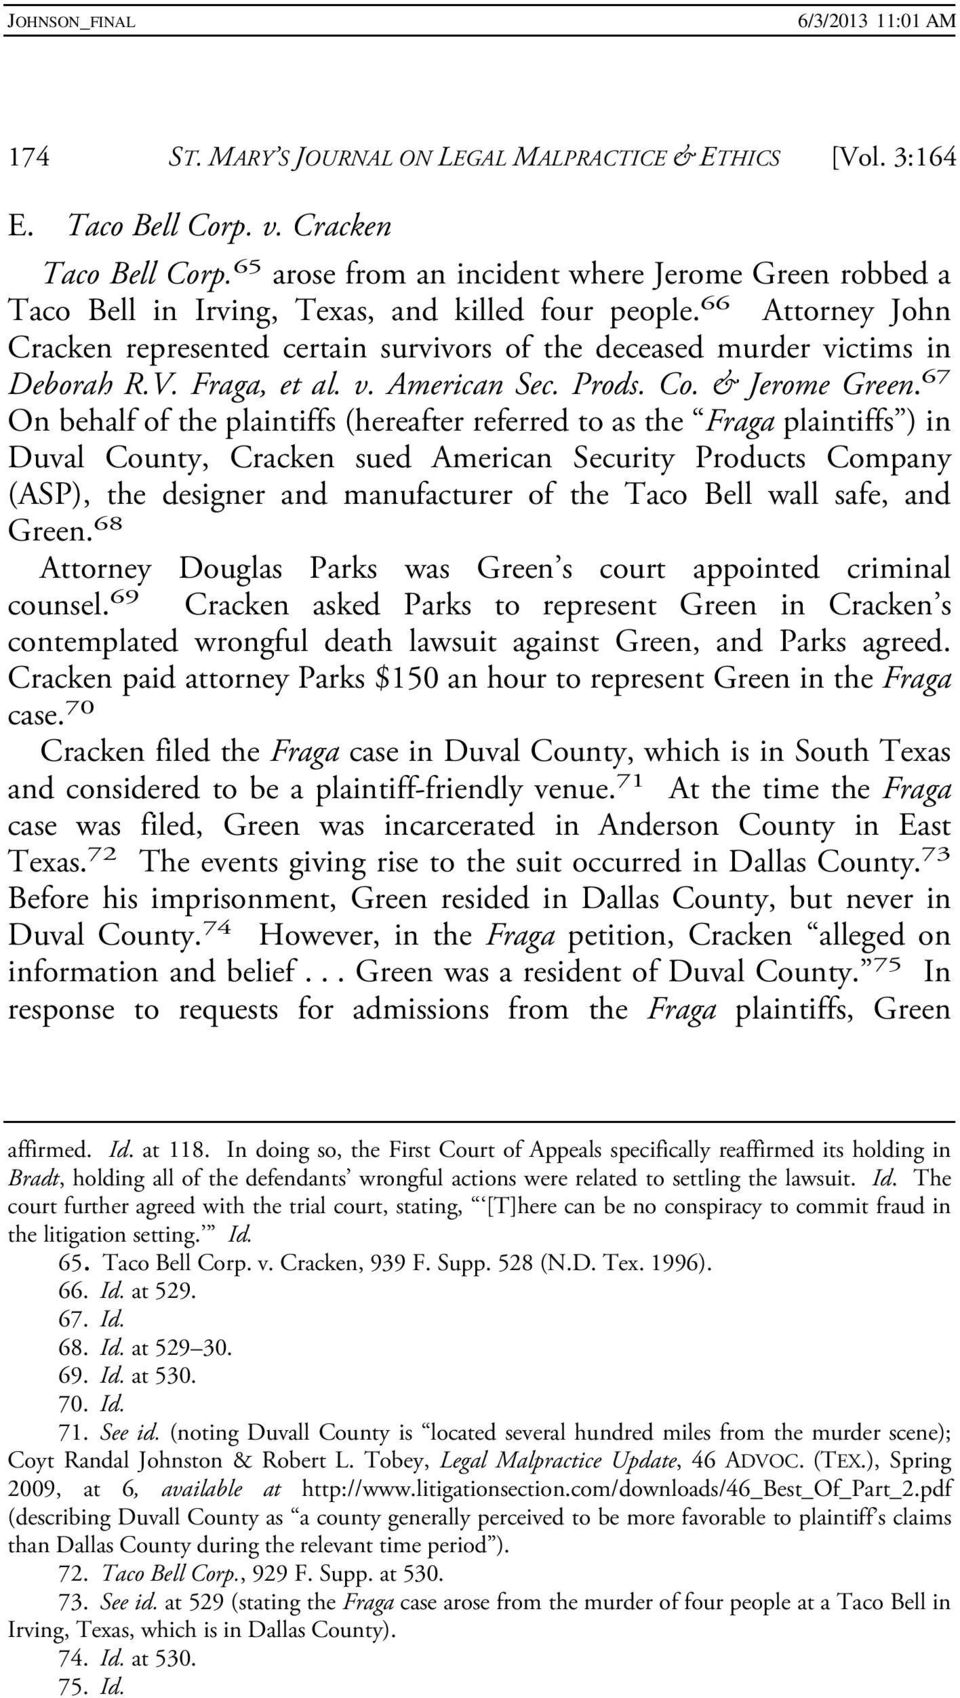 66 Attorney John Cracken represented certain survivors of the deceased murder victims in Deborah R.V. Fraga, et al. v. American Sec. Prods. Co. & Jerome Green.